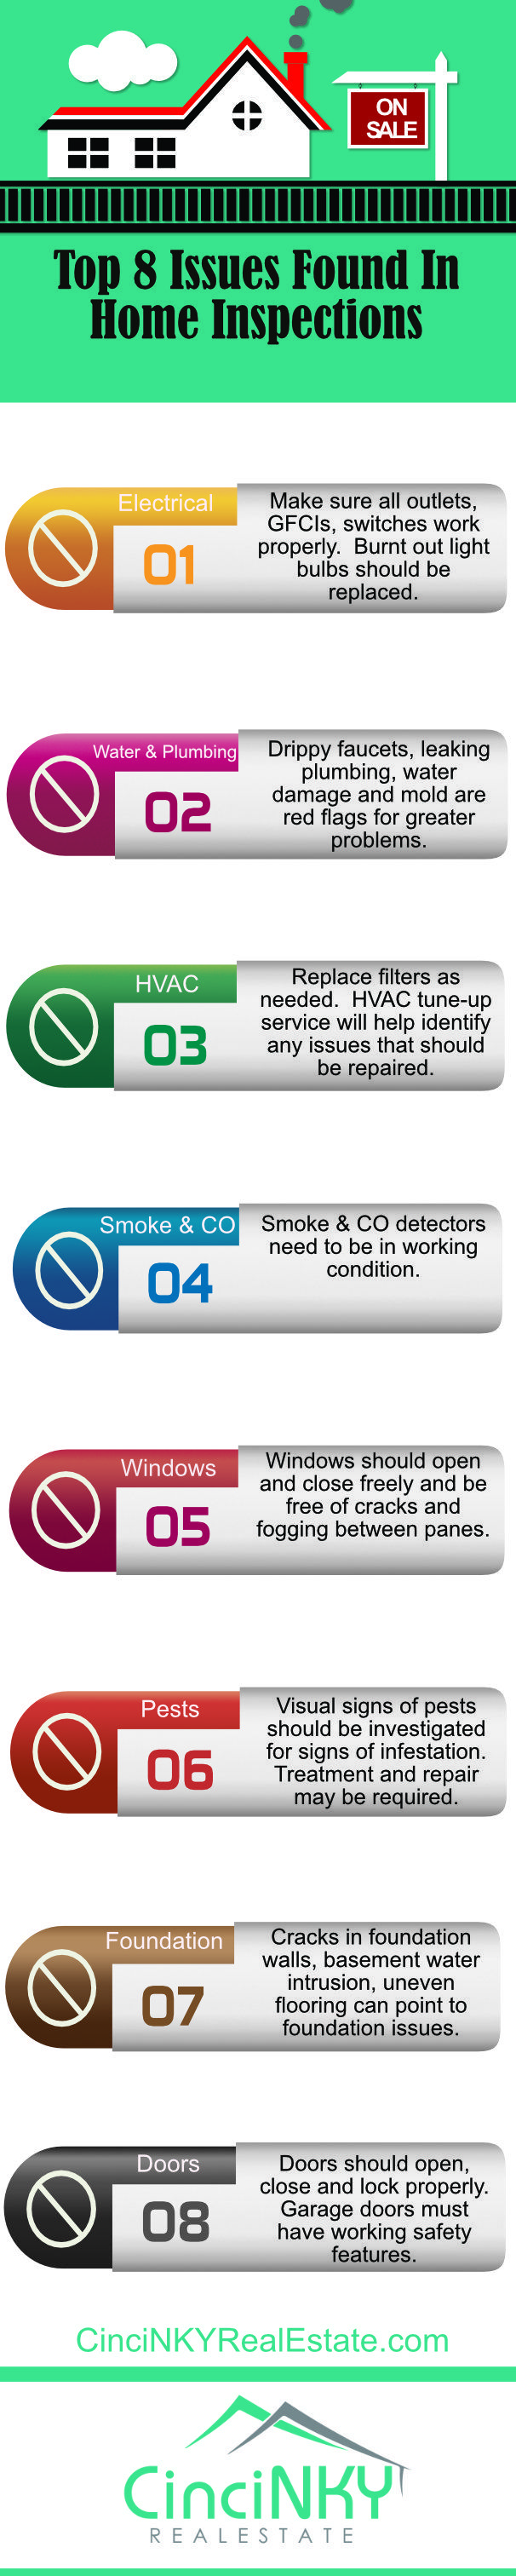 Top 8 Issues Found In Home Inspections (Infographic)